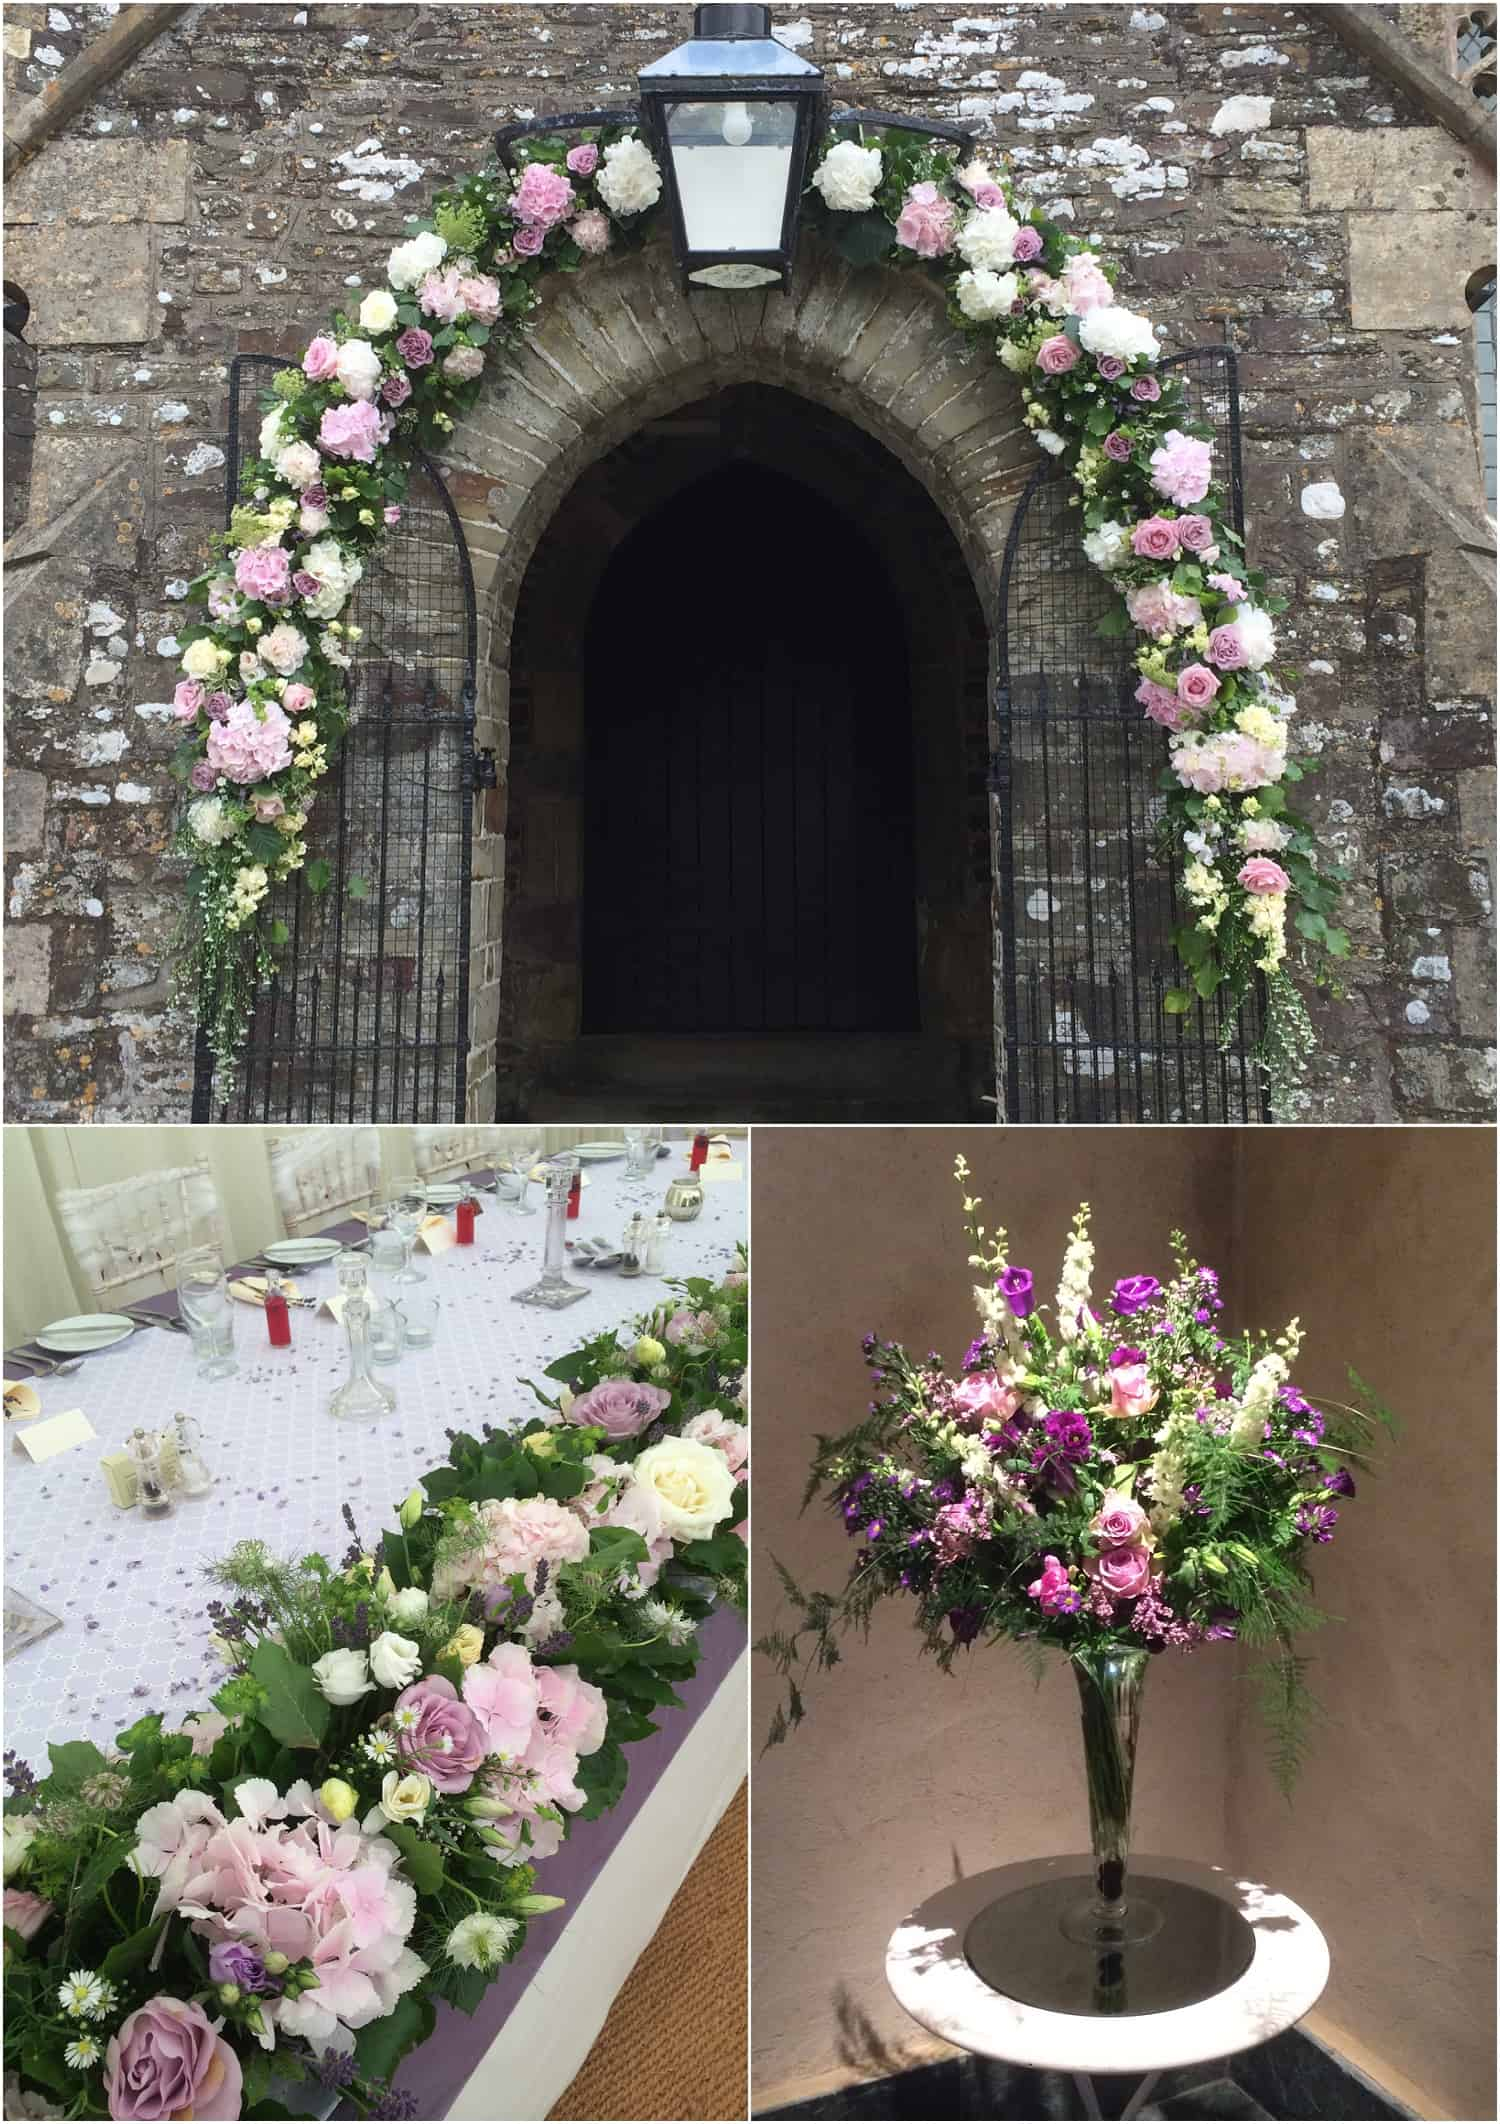 Larger floral features for archways and aisles. By Sarah Pepper